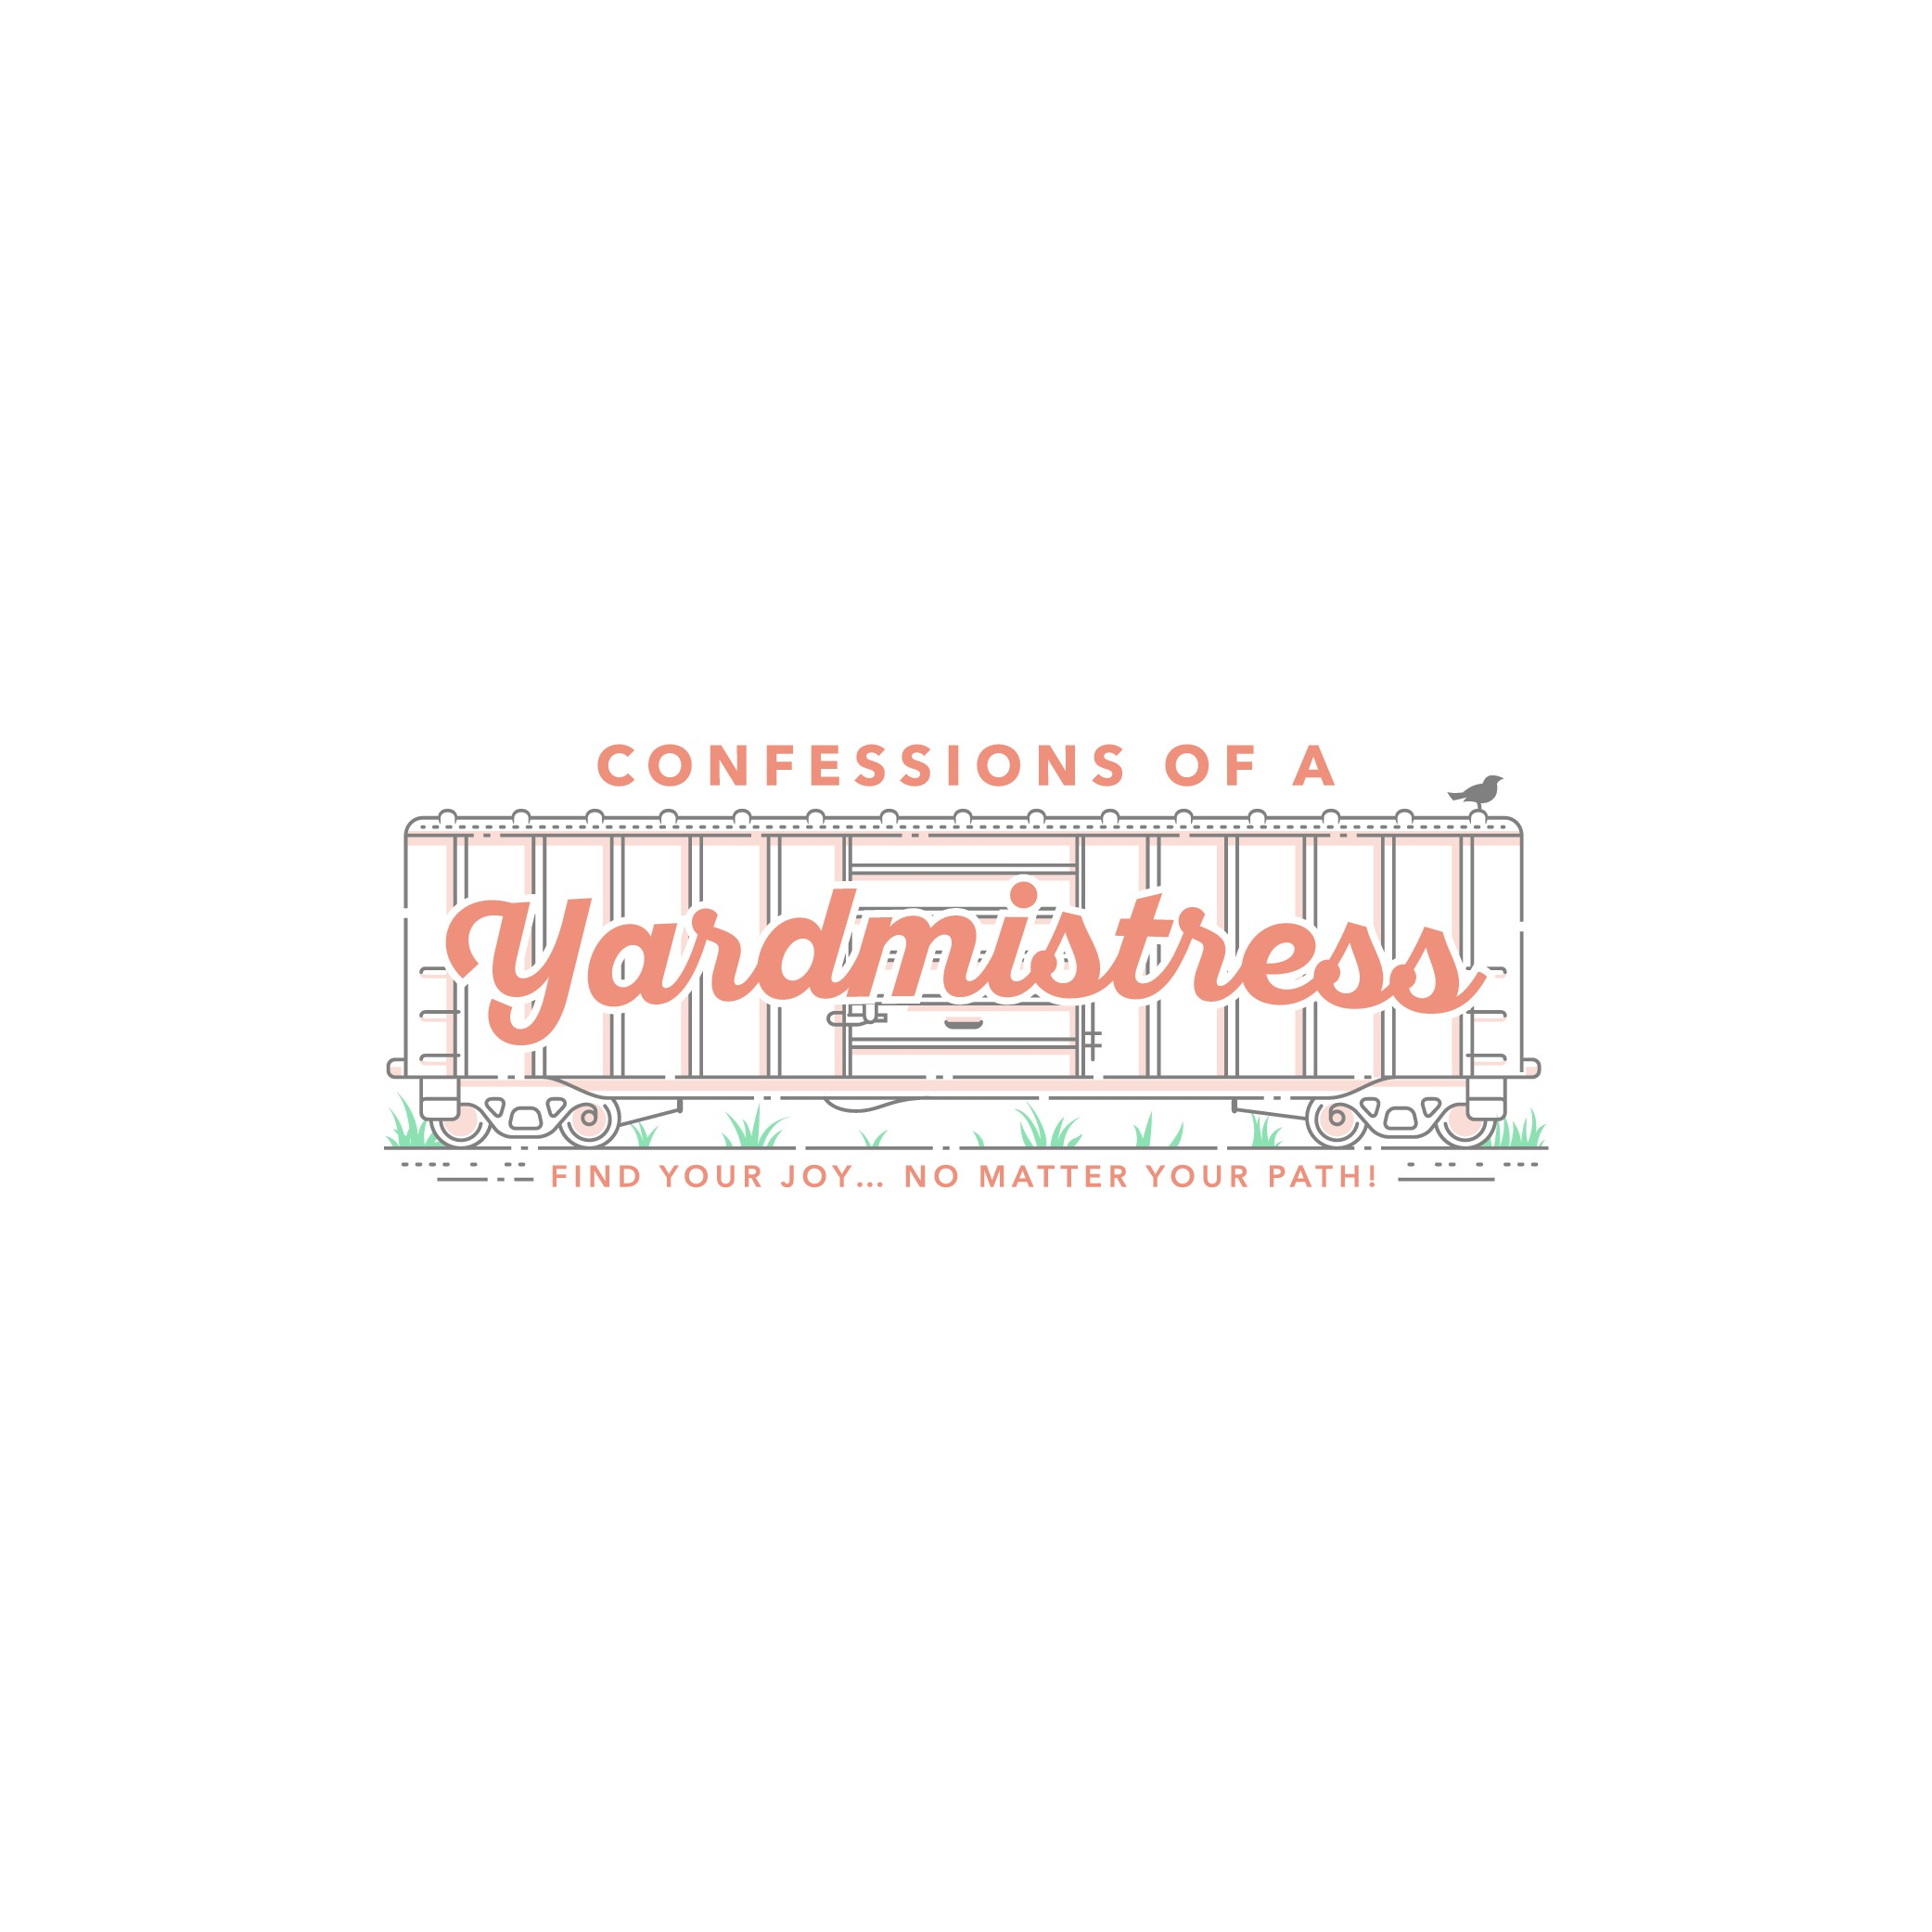 Create an engaging logo for Confessions of a Yardmistress blog and book